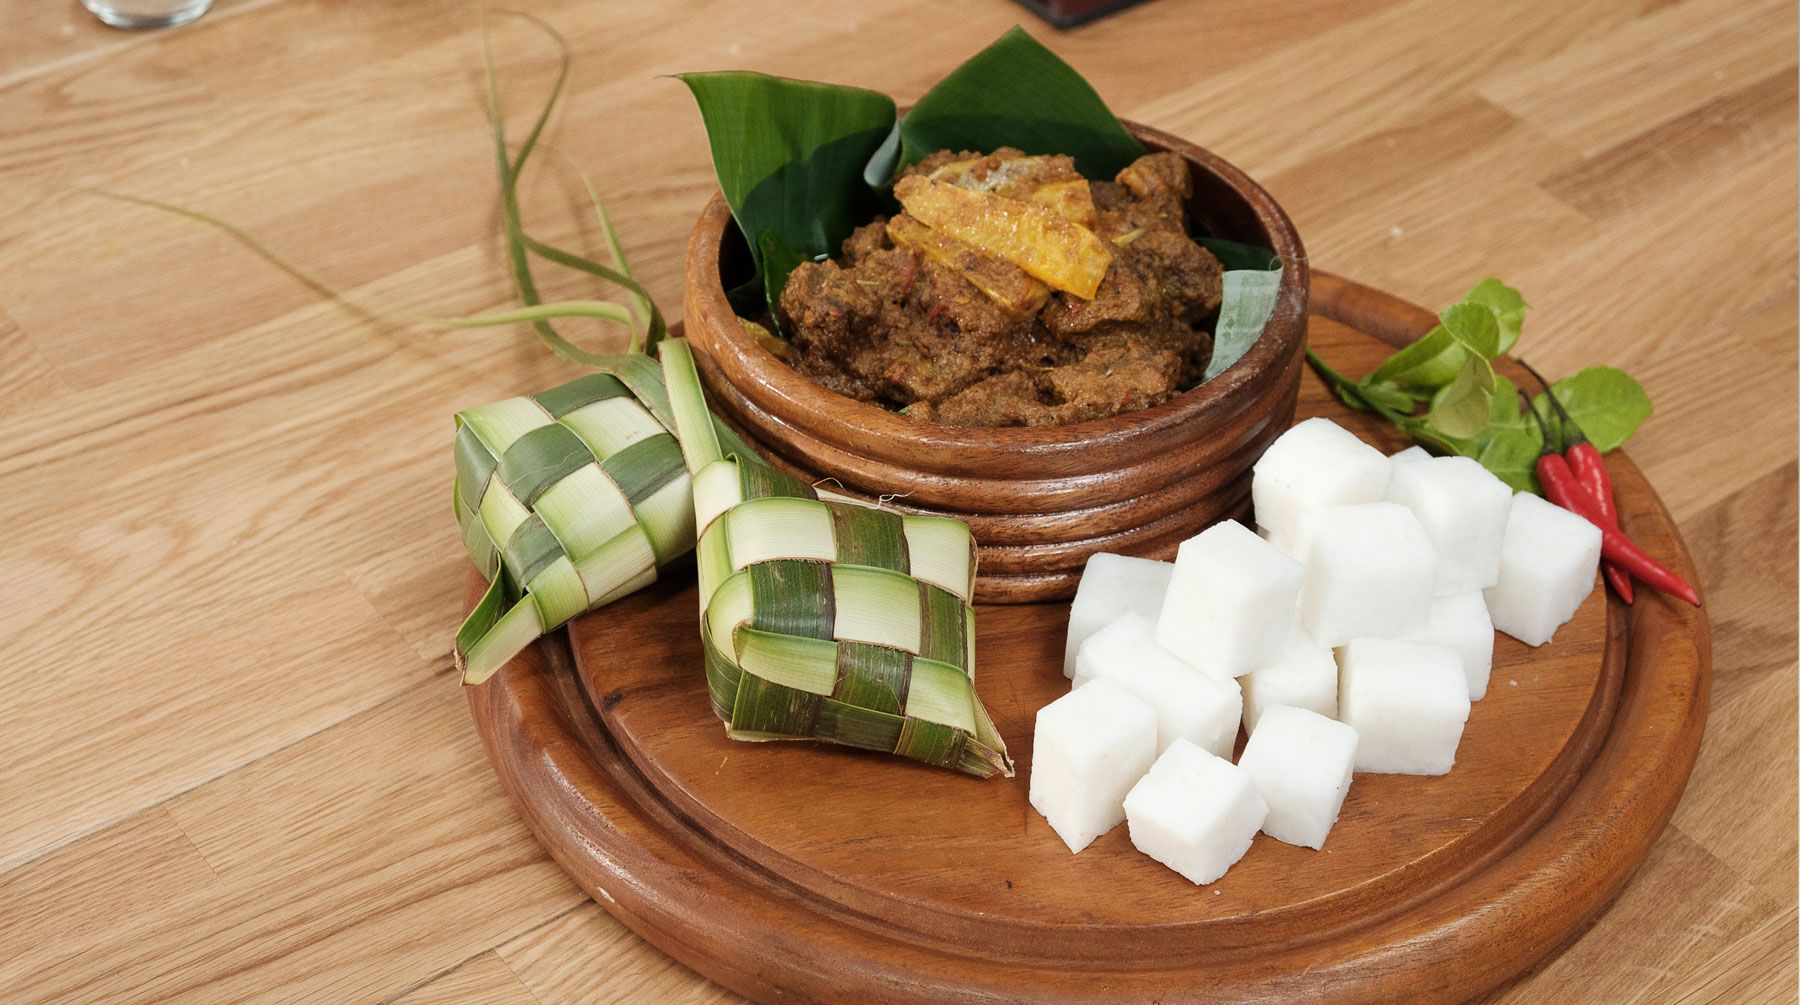 Enjoy this quick and easy malaysian inspired recipe from martin enjoy this quick and easy malaysian inspired recipe from martin yans asian favorites asian food channelbeef forumfinder Gallery